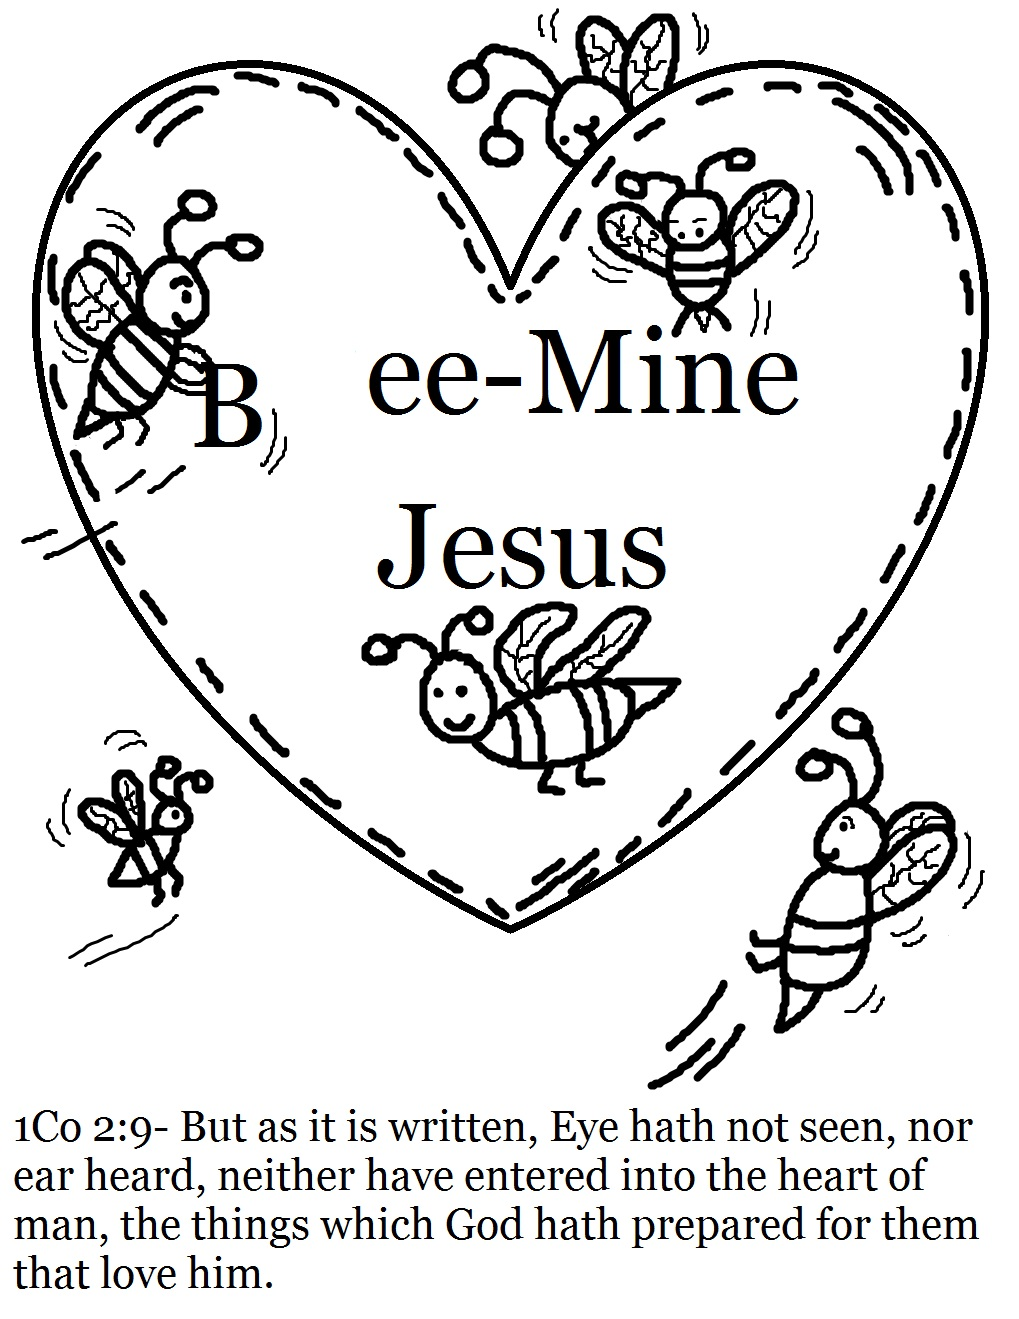 Adult Best Christian Valentines Day Coloring Pages Images best valentines day coloring pages for sunday school valentine bees gallery images